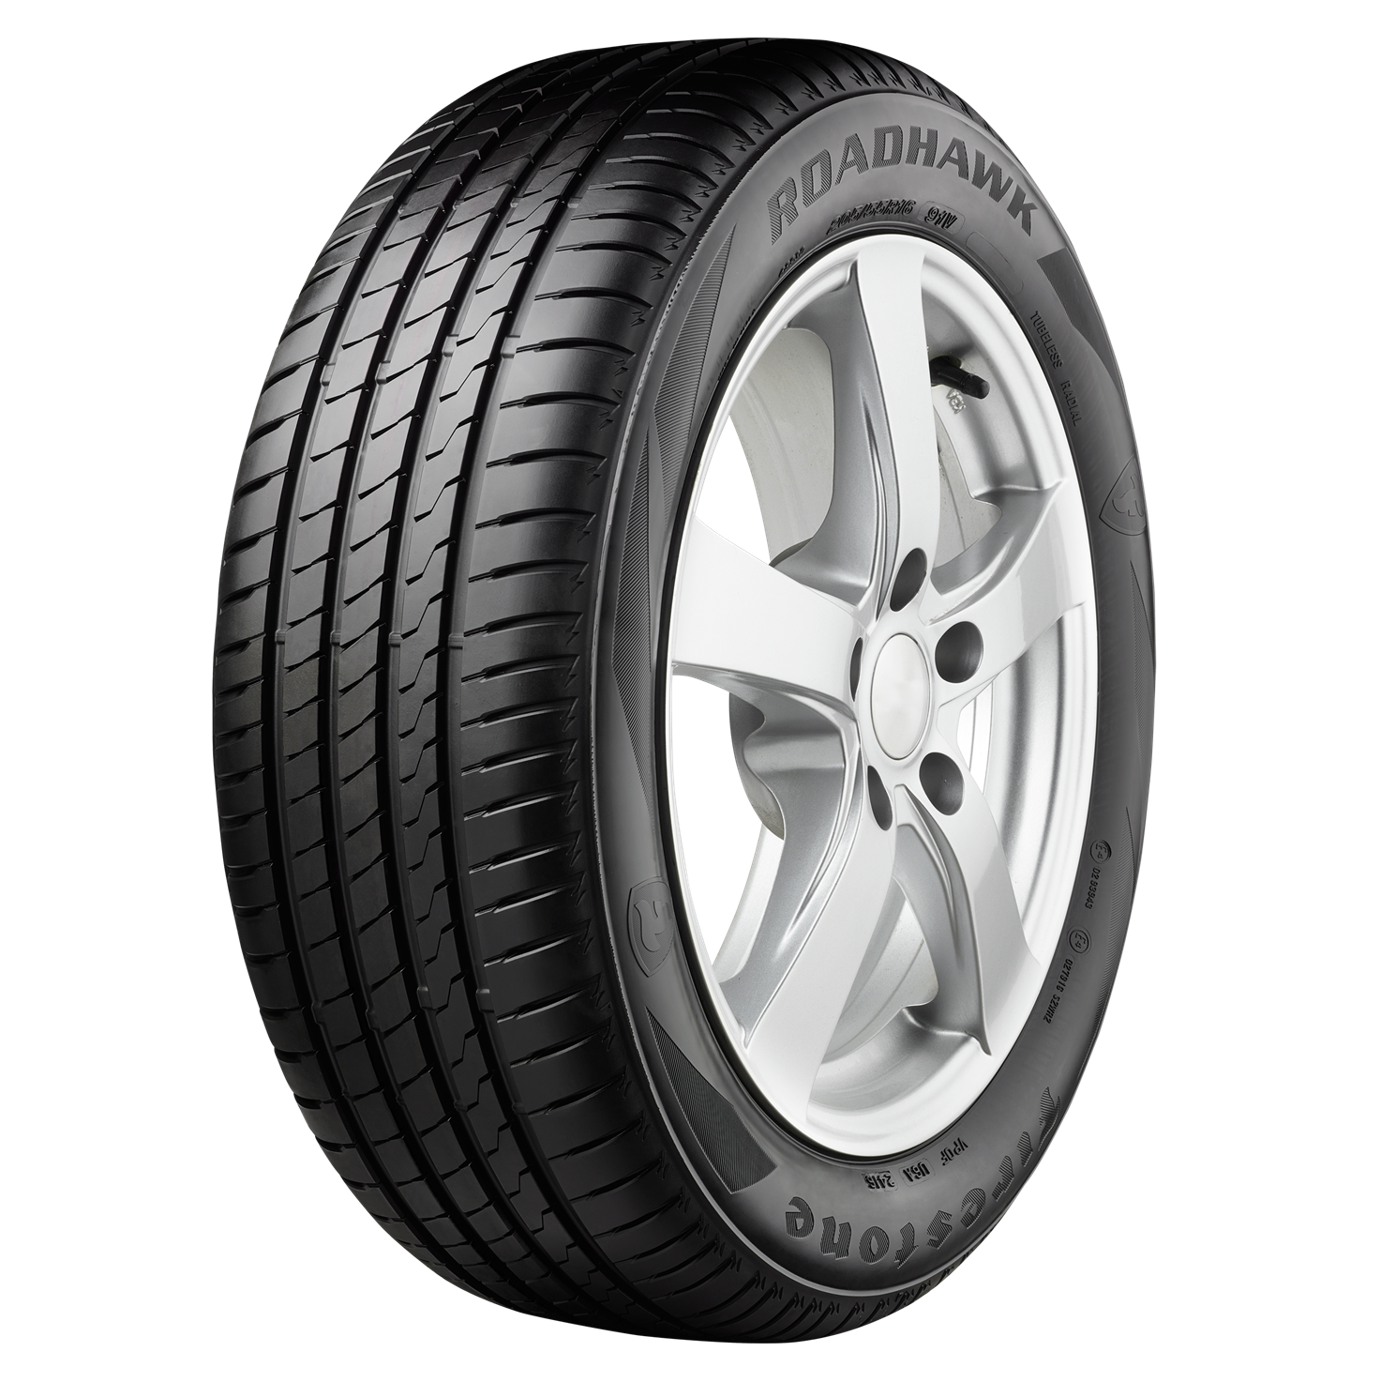 215/55R17 FIRESTONE ROADHAWK 94W (CAR SUMMER)